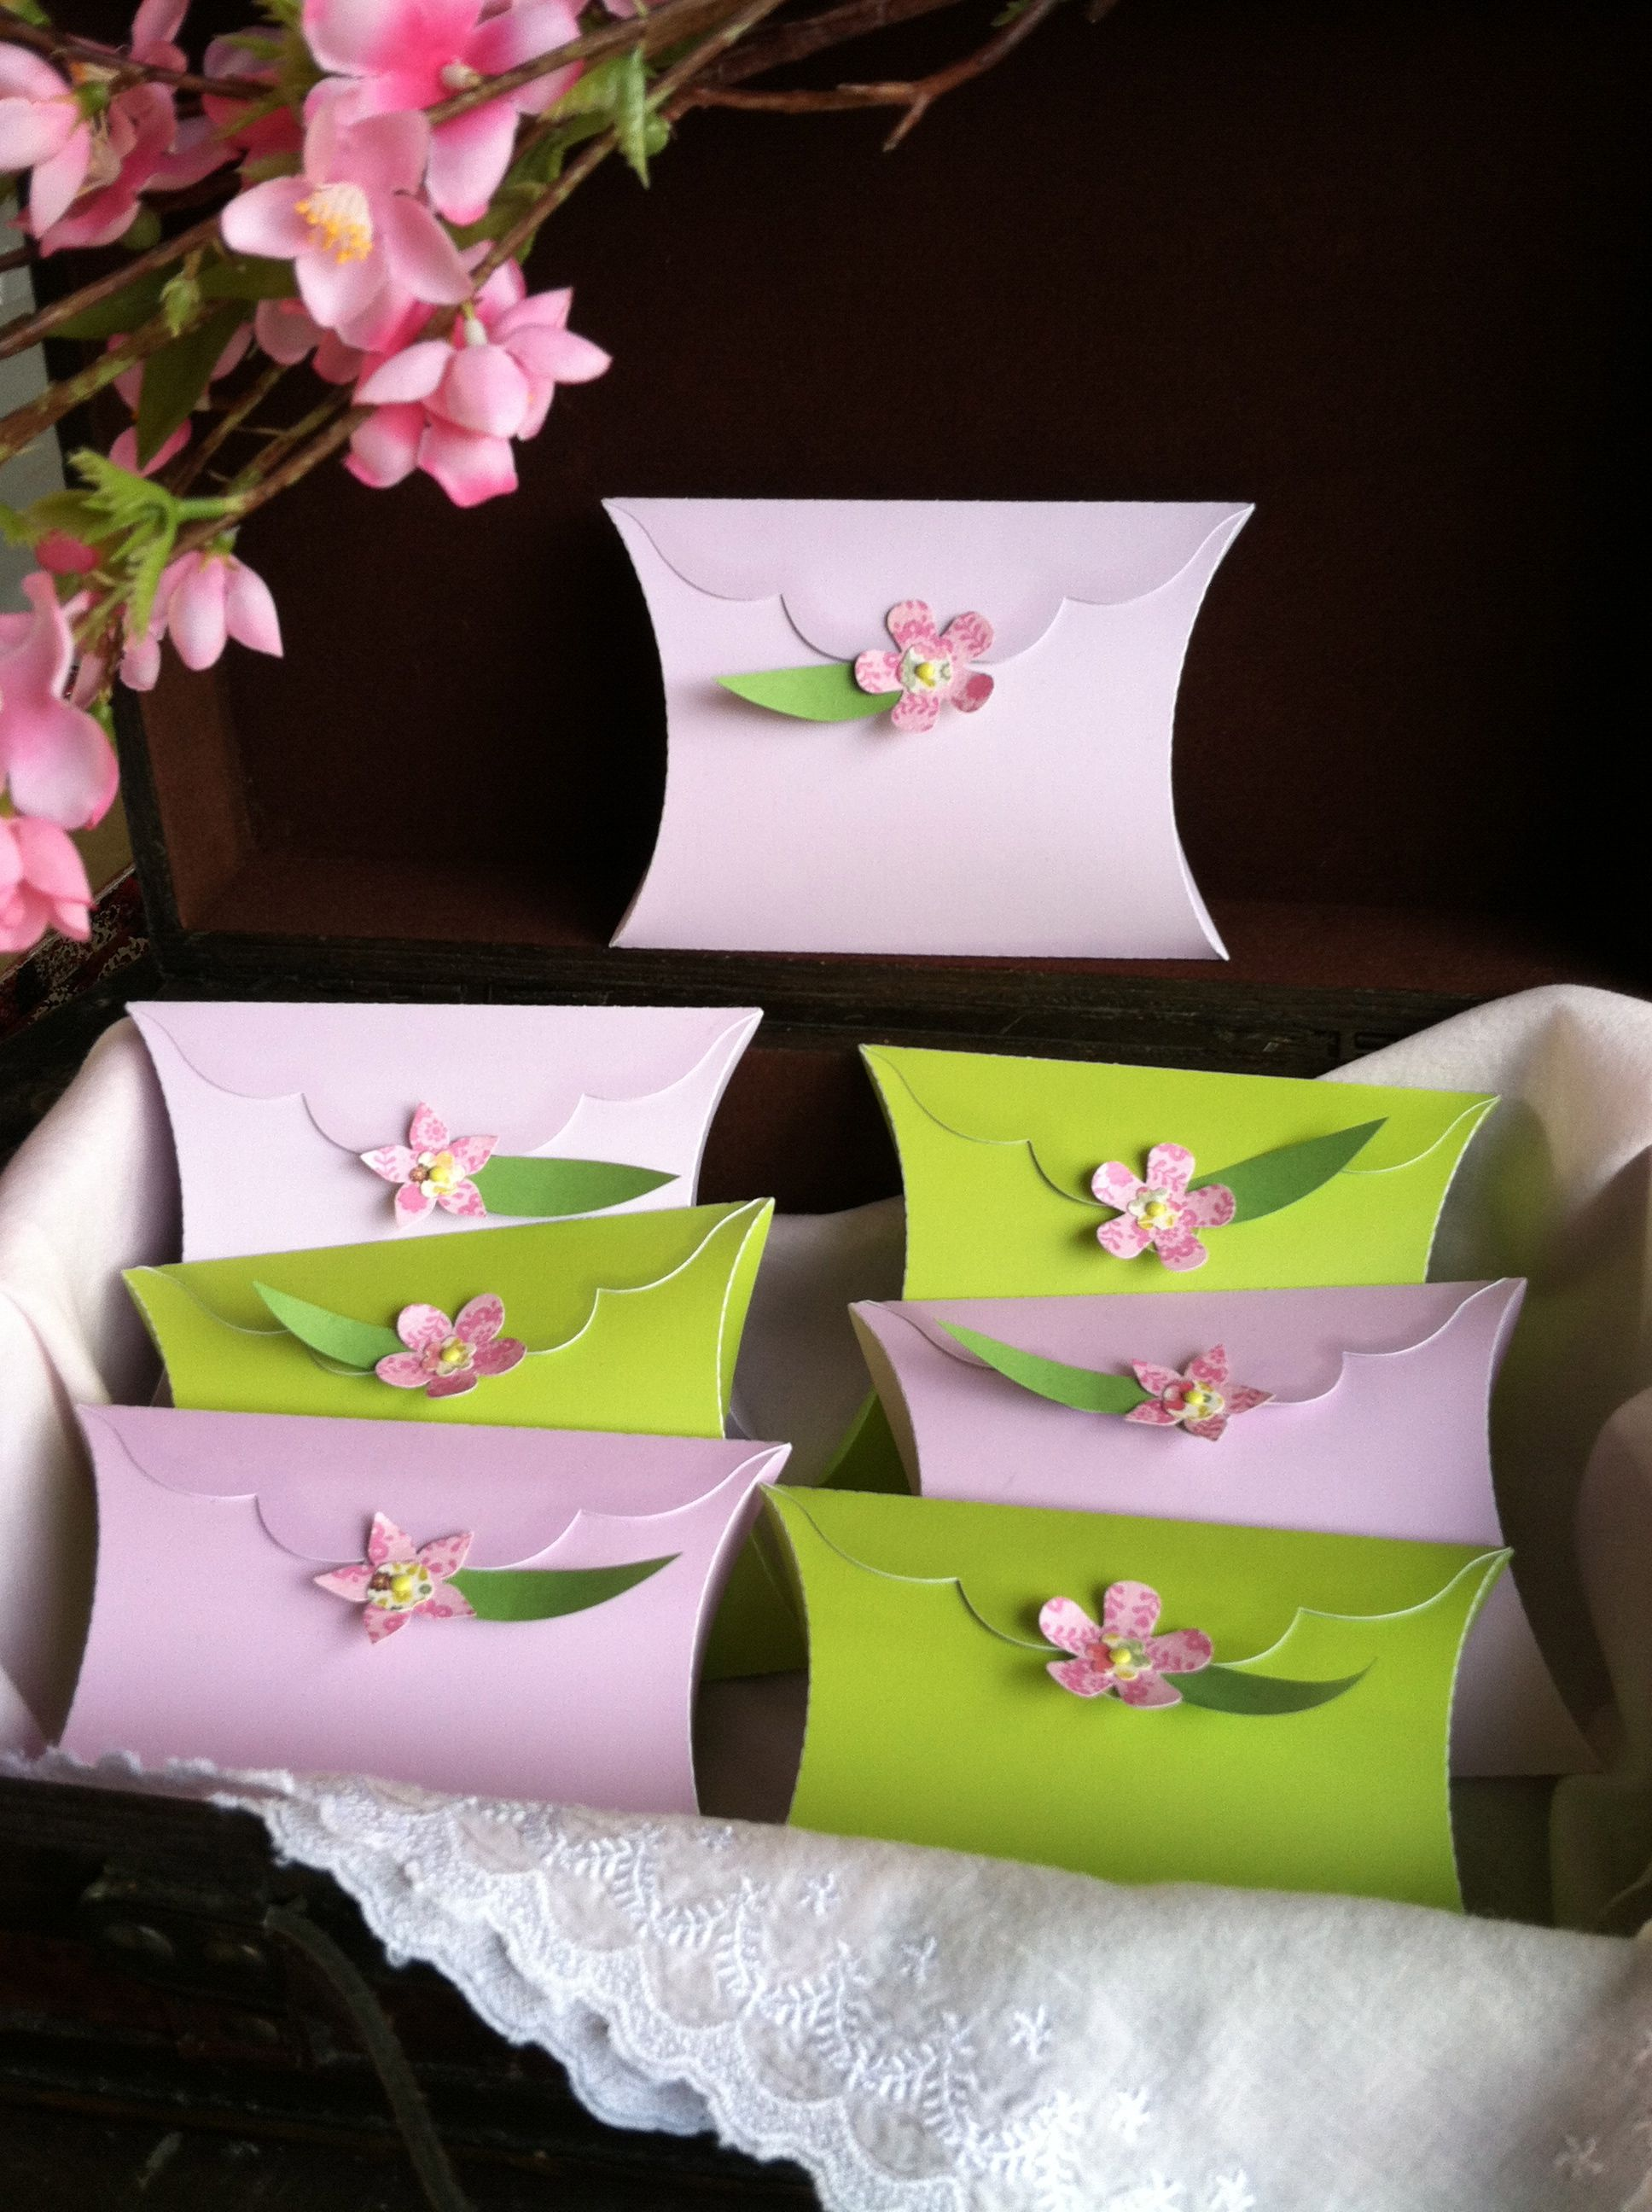 The DIY cherry blossoms look great on the pillow boxes too!